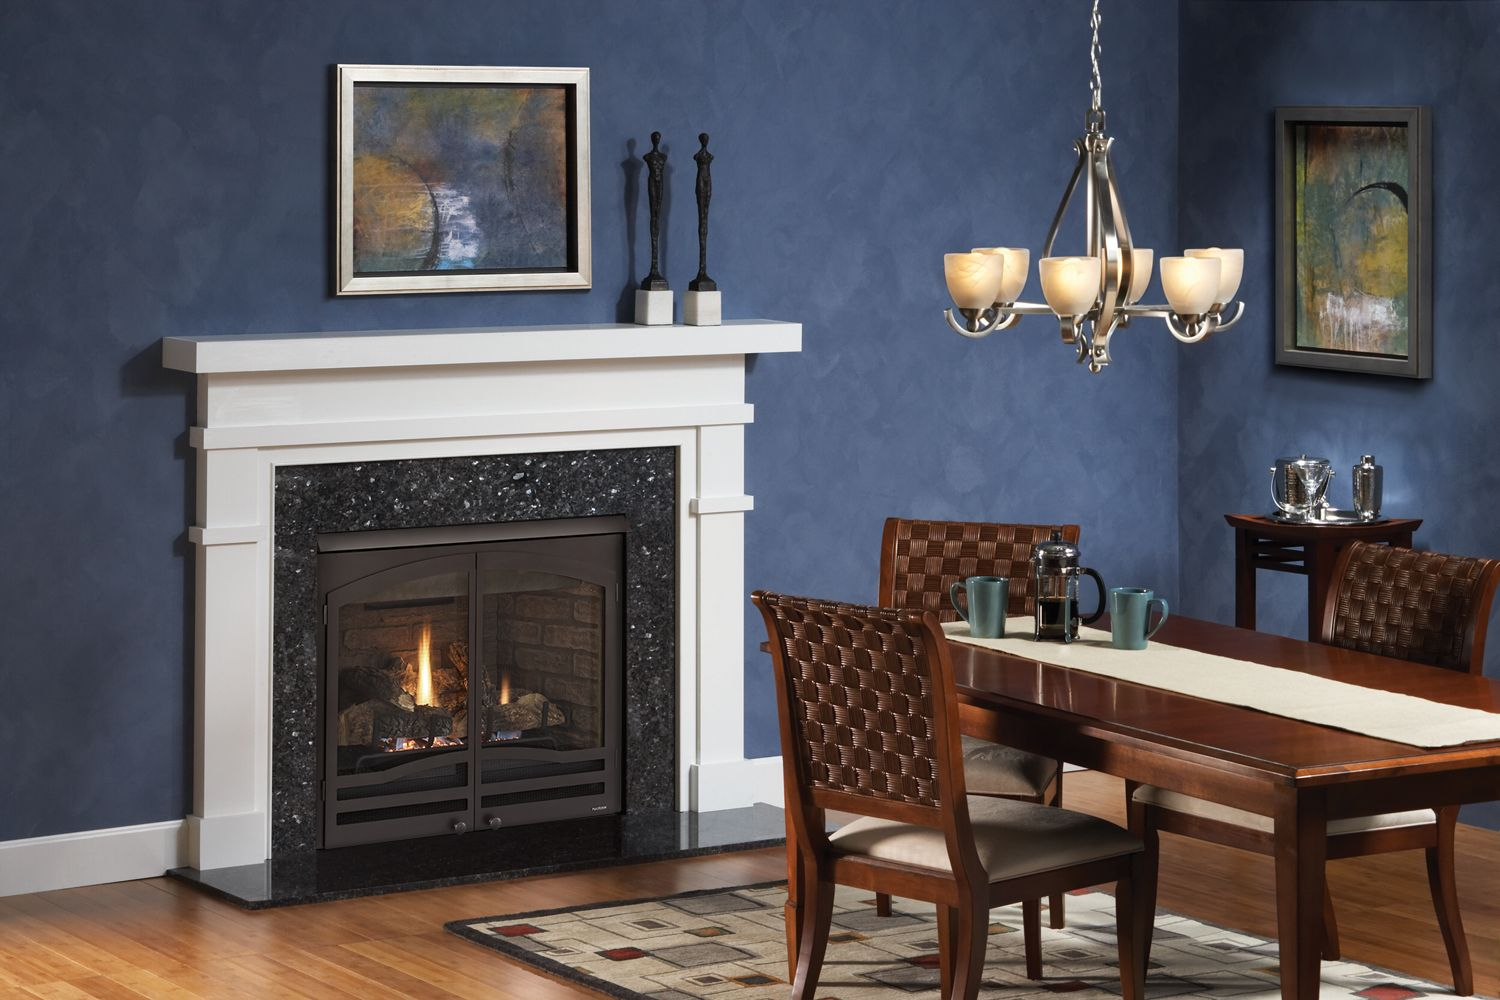 Love How This Fireplace Pops With The White Surround Mantel And